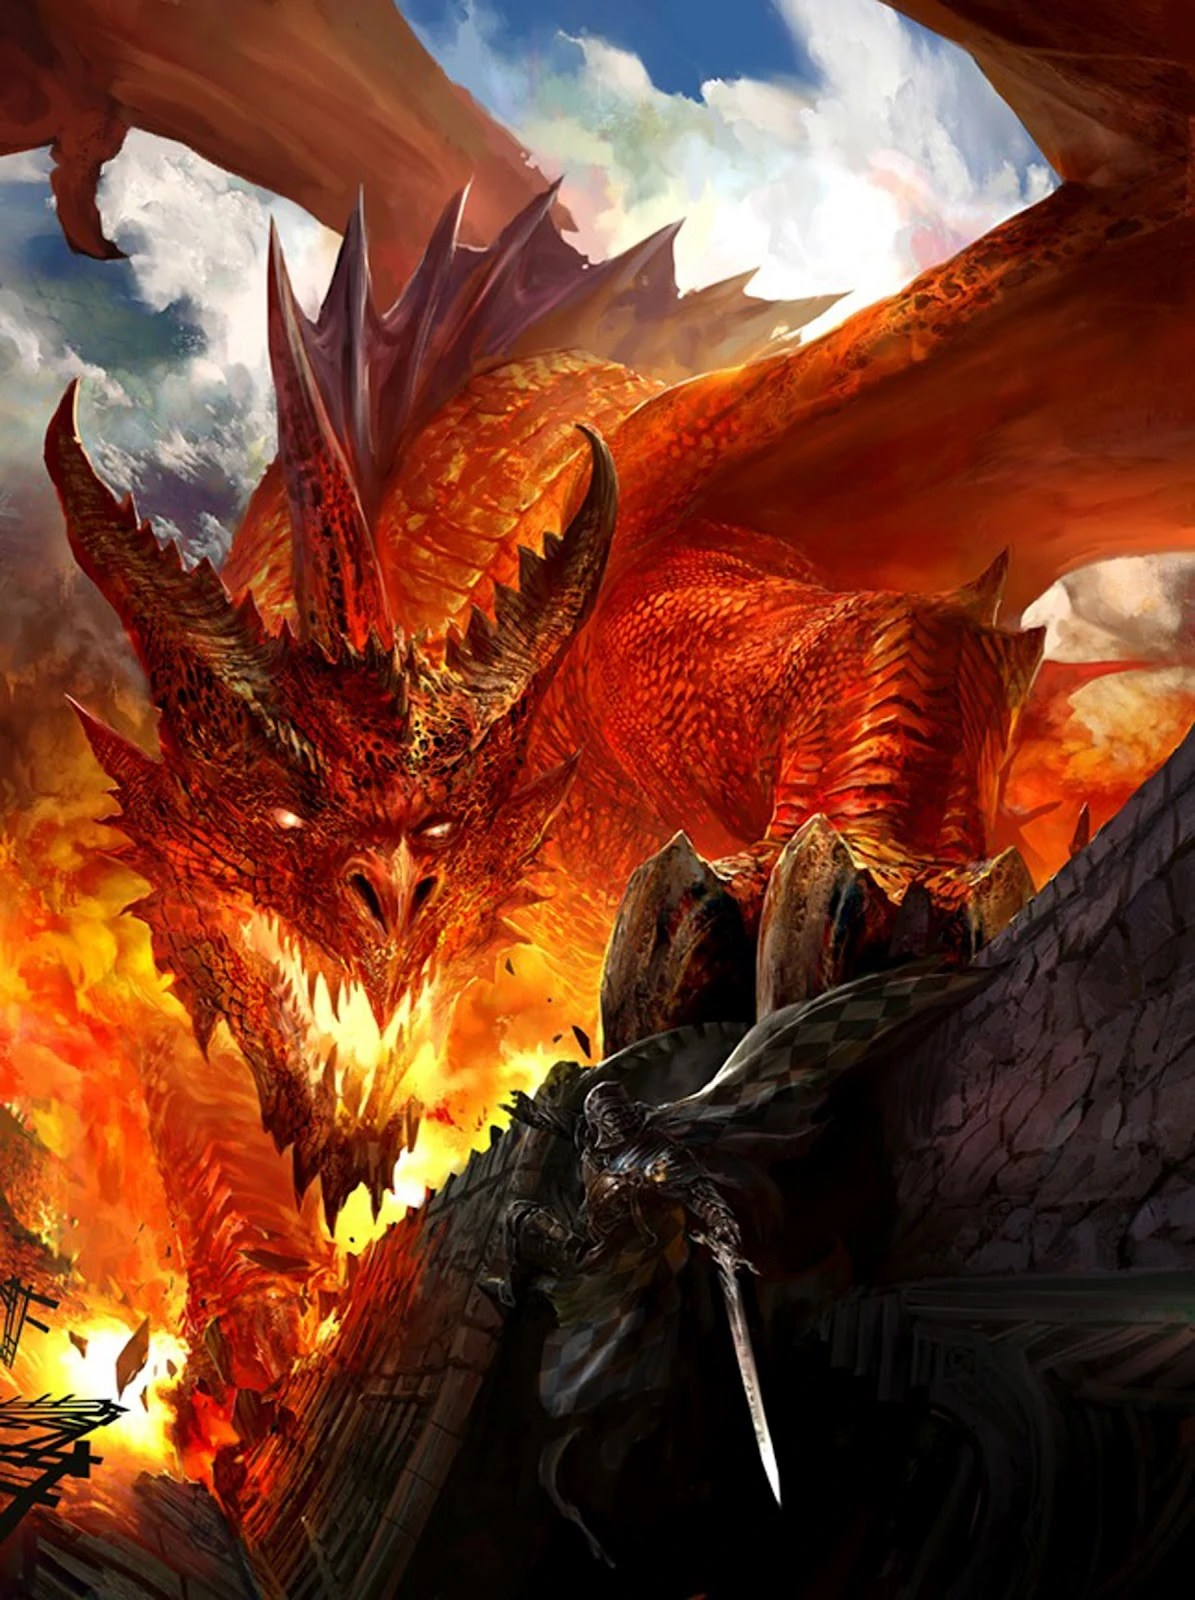 Red Dragons Breathing Fire